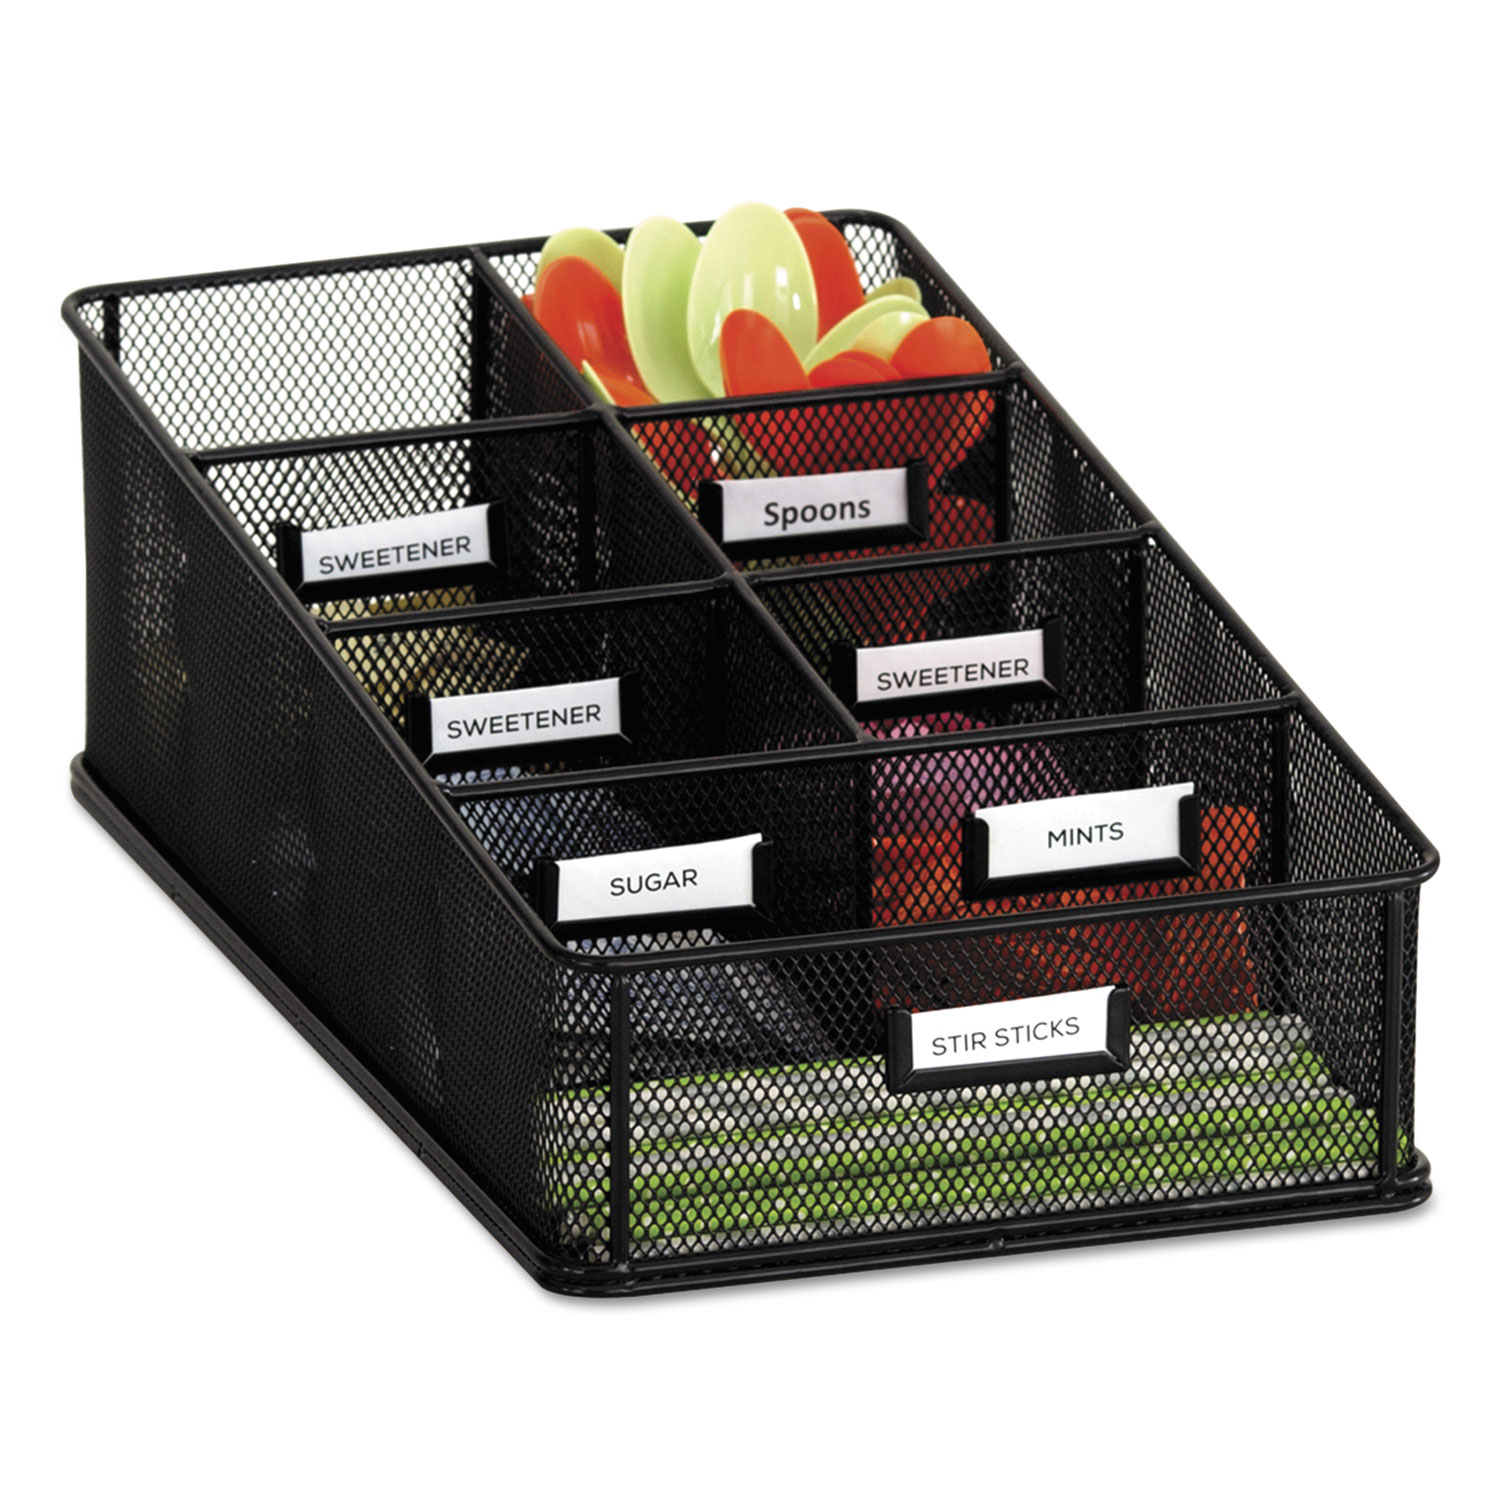 Onyx Breakroom Organizers, 7 Compartments, 16 X8 1/2×5 1/4, Steel Mesh, Black